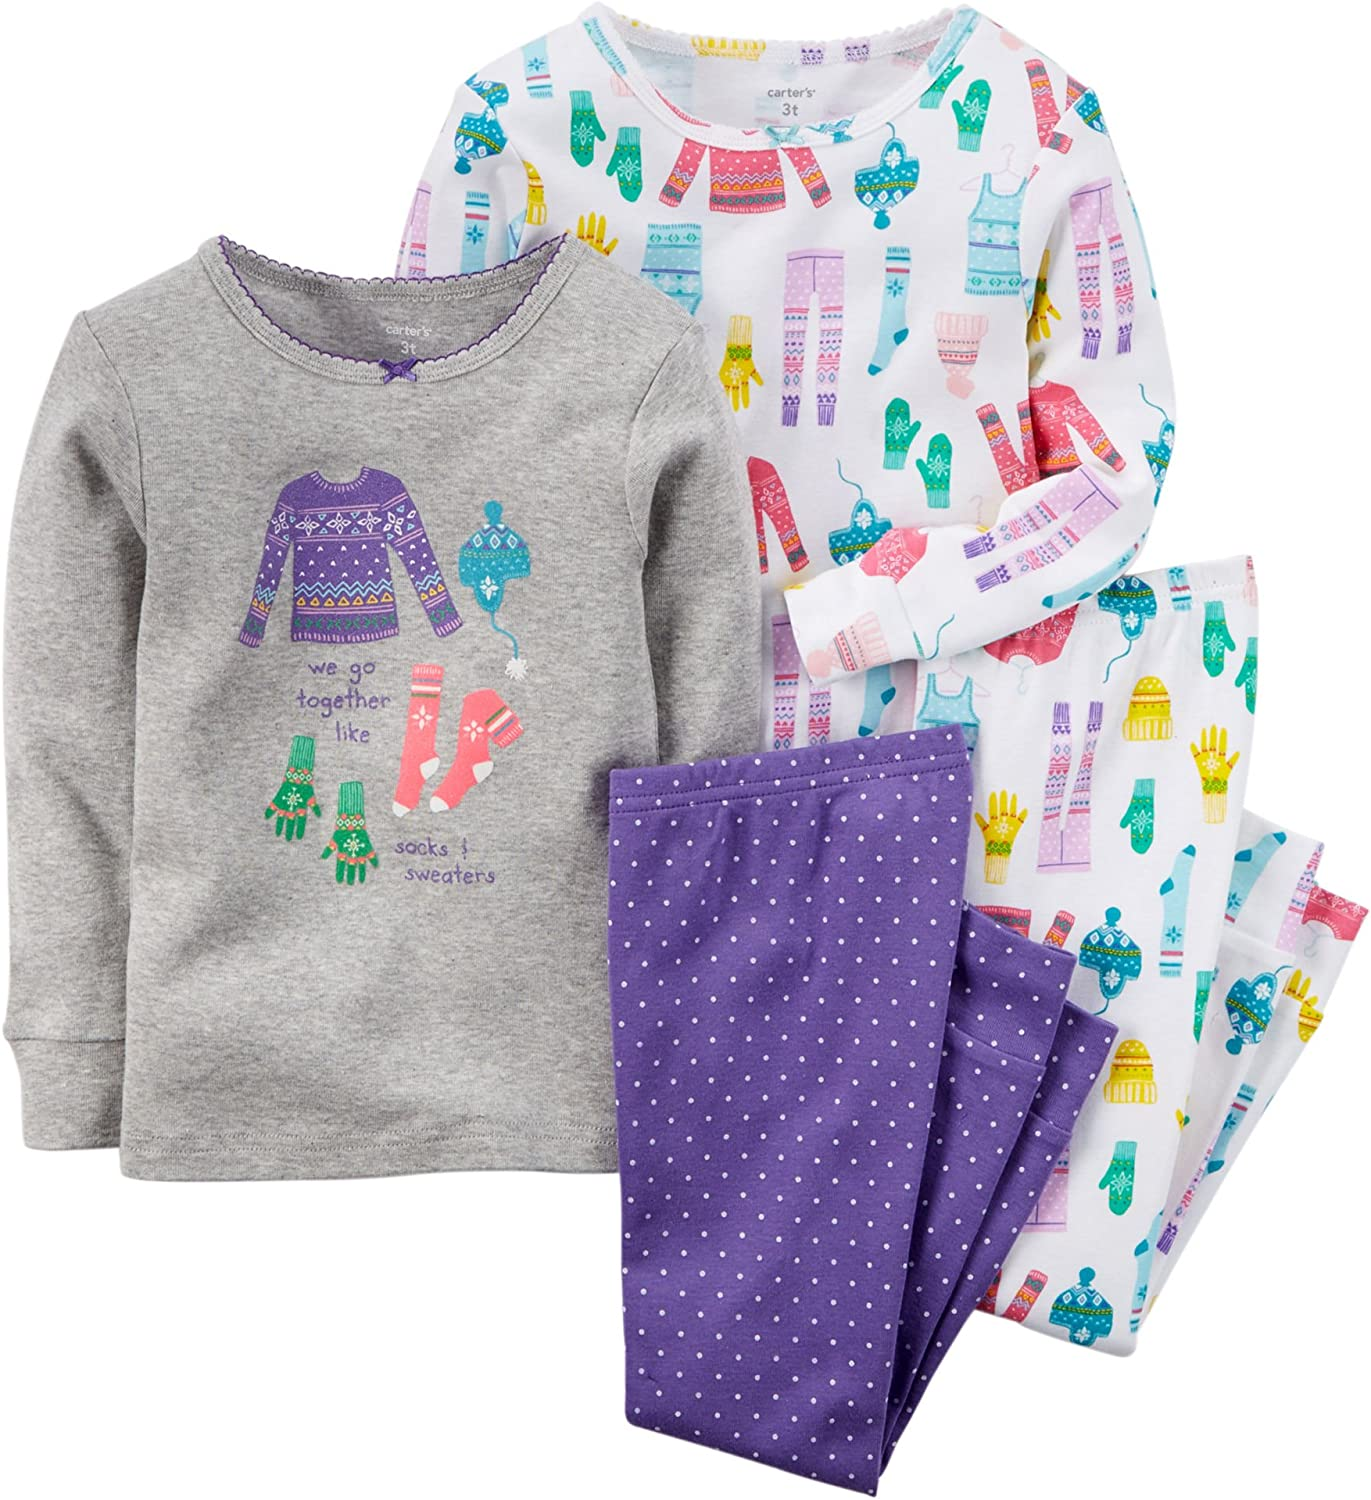 Carter's Baby Girls' 4 Pc. Snug Fit Cotton Pjs Winter Clothes (9M, Grey)